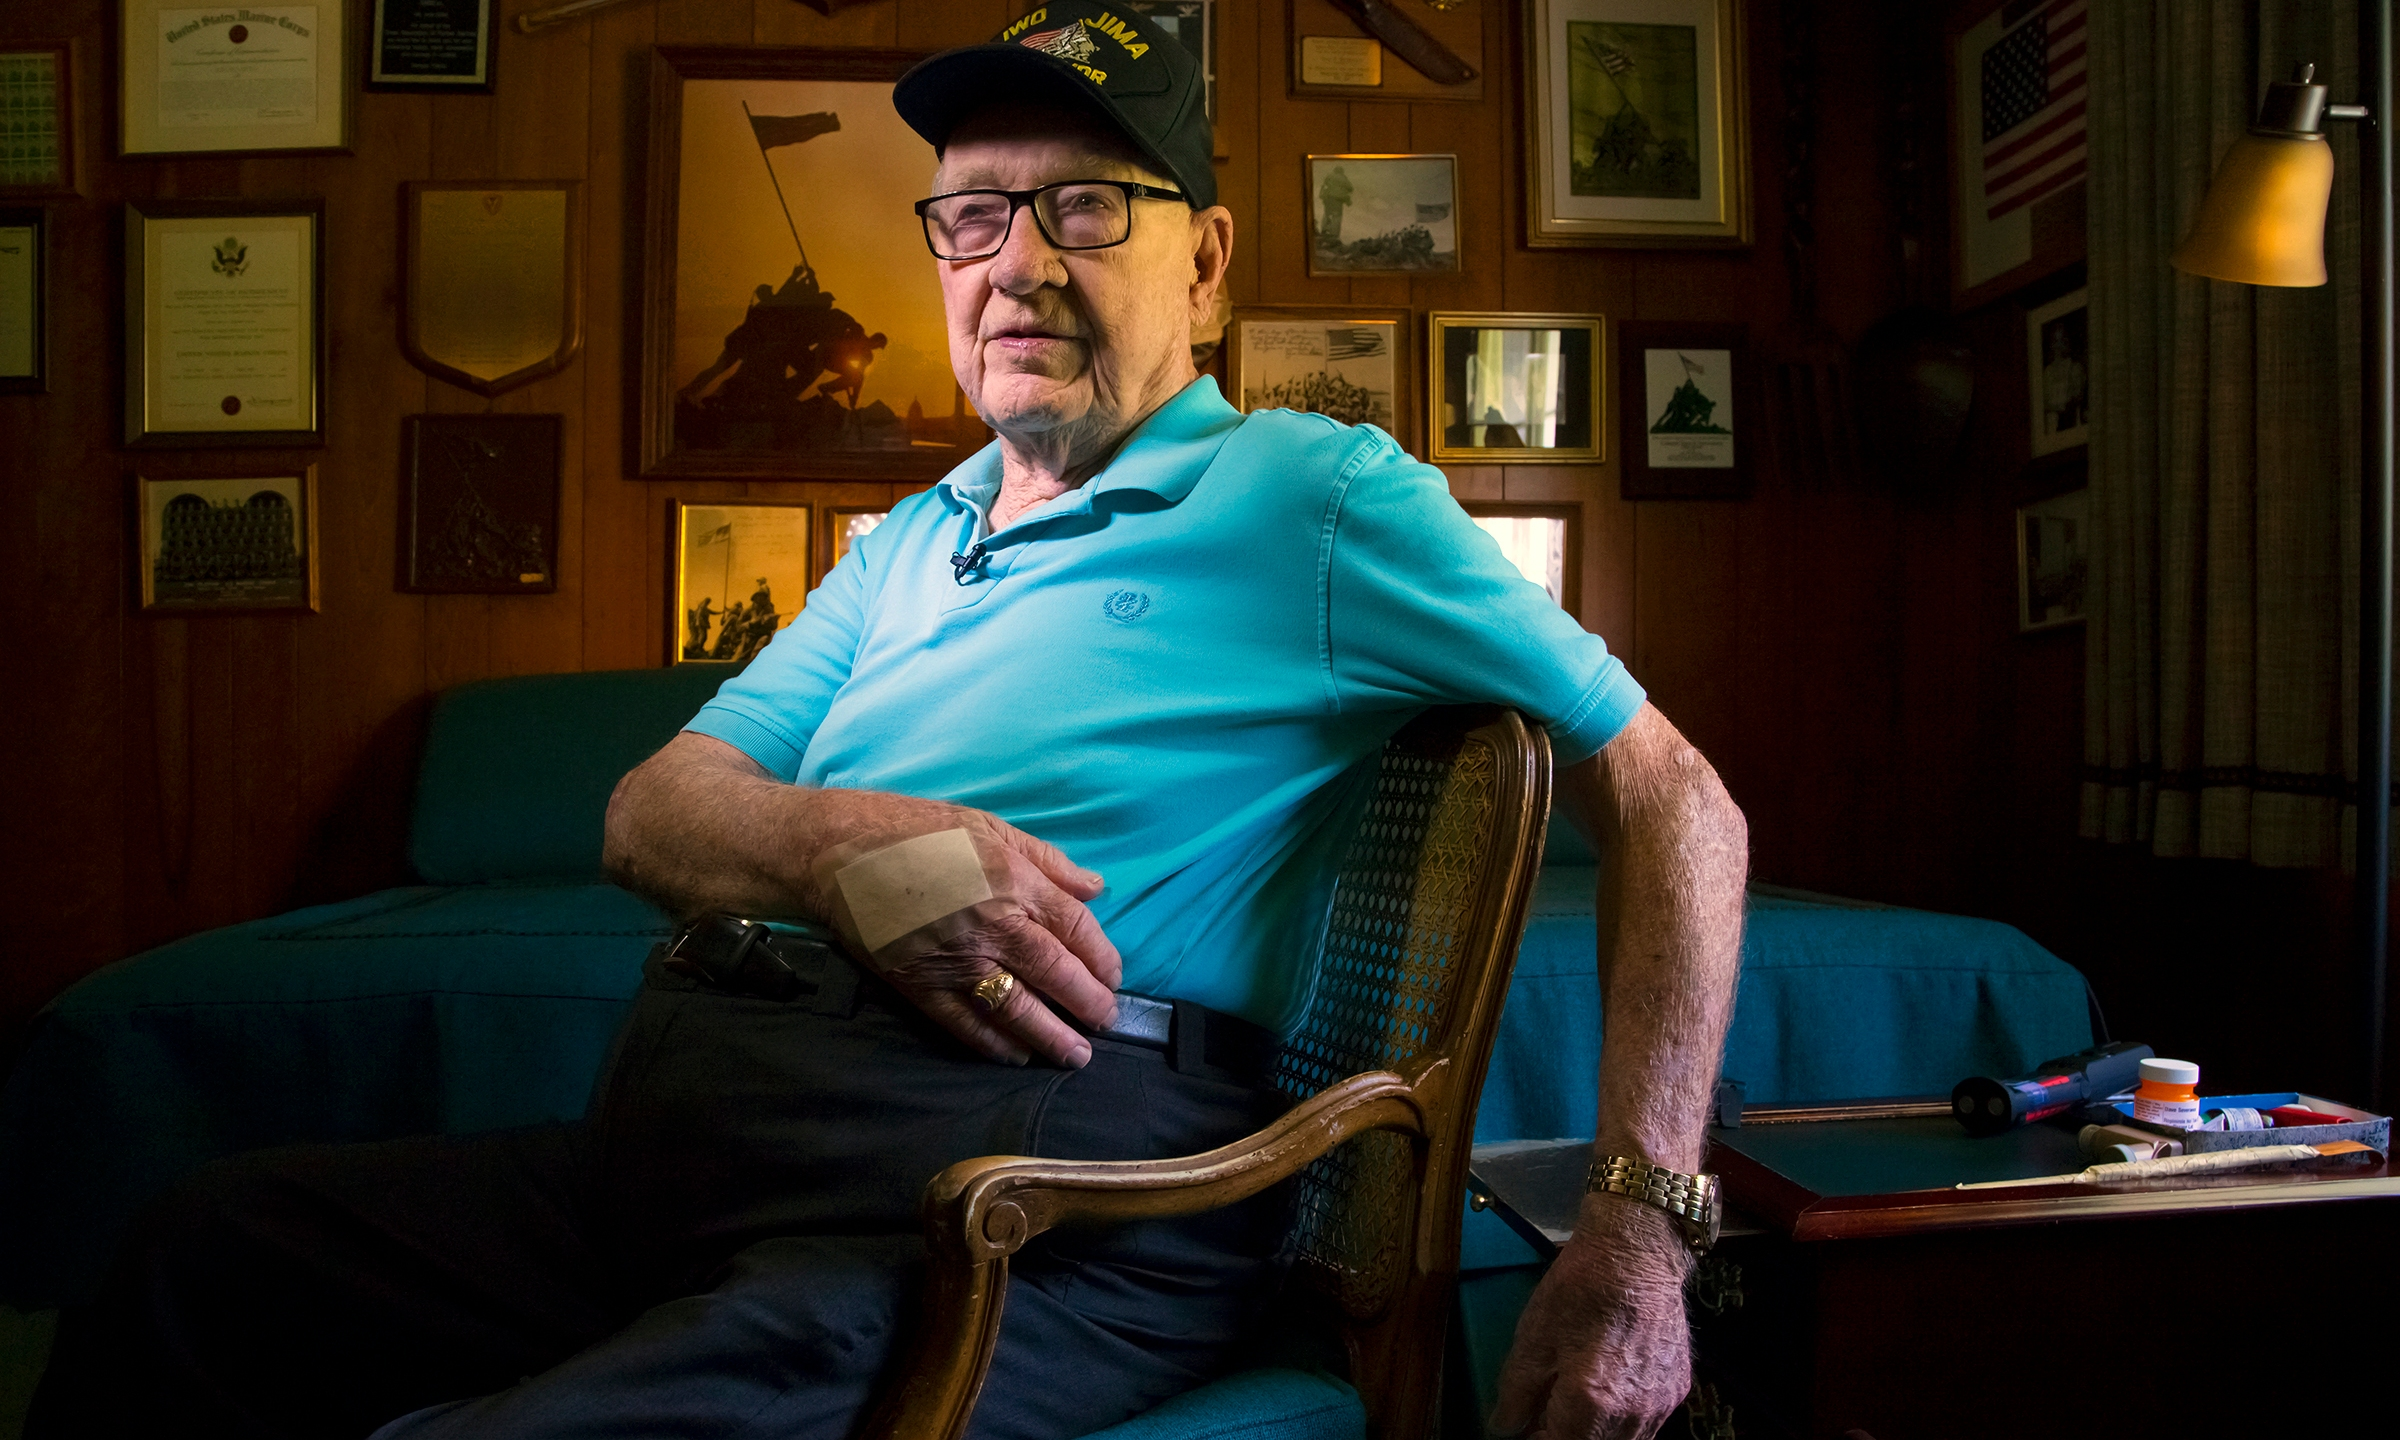 Dave Severance, a retired U.S. Marine colonel whose troops were the first to plant an American flag over the Japanese island of Iwo Jima during World War II, is seen at his home in San Diego on May 20, 2015. (San Diego Union-Tribune via Associated Press)